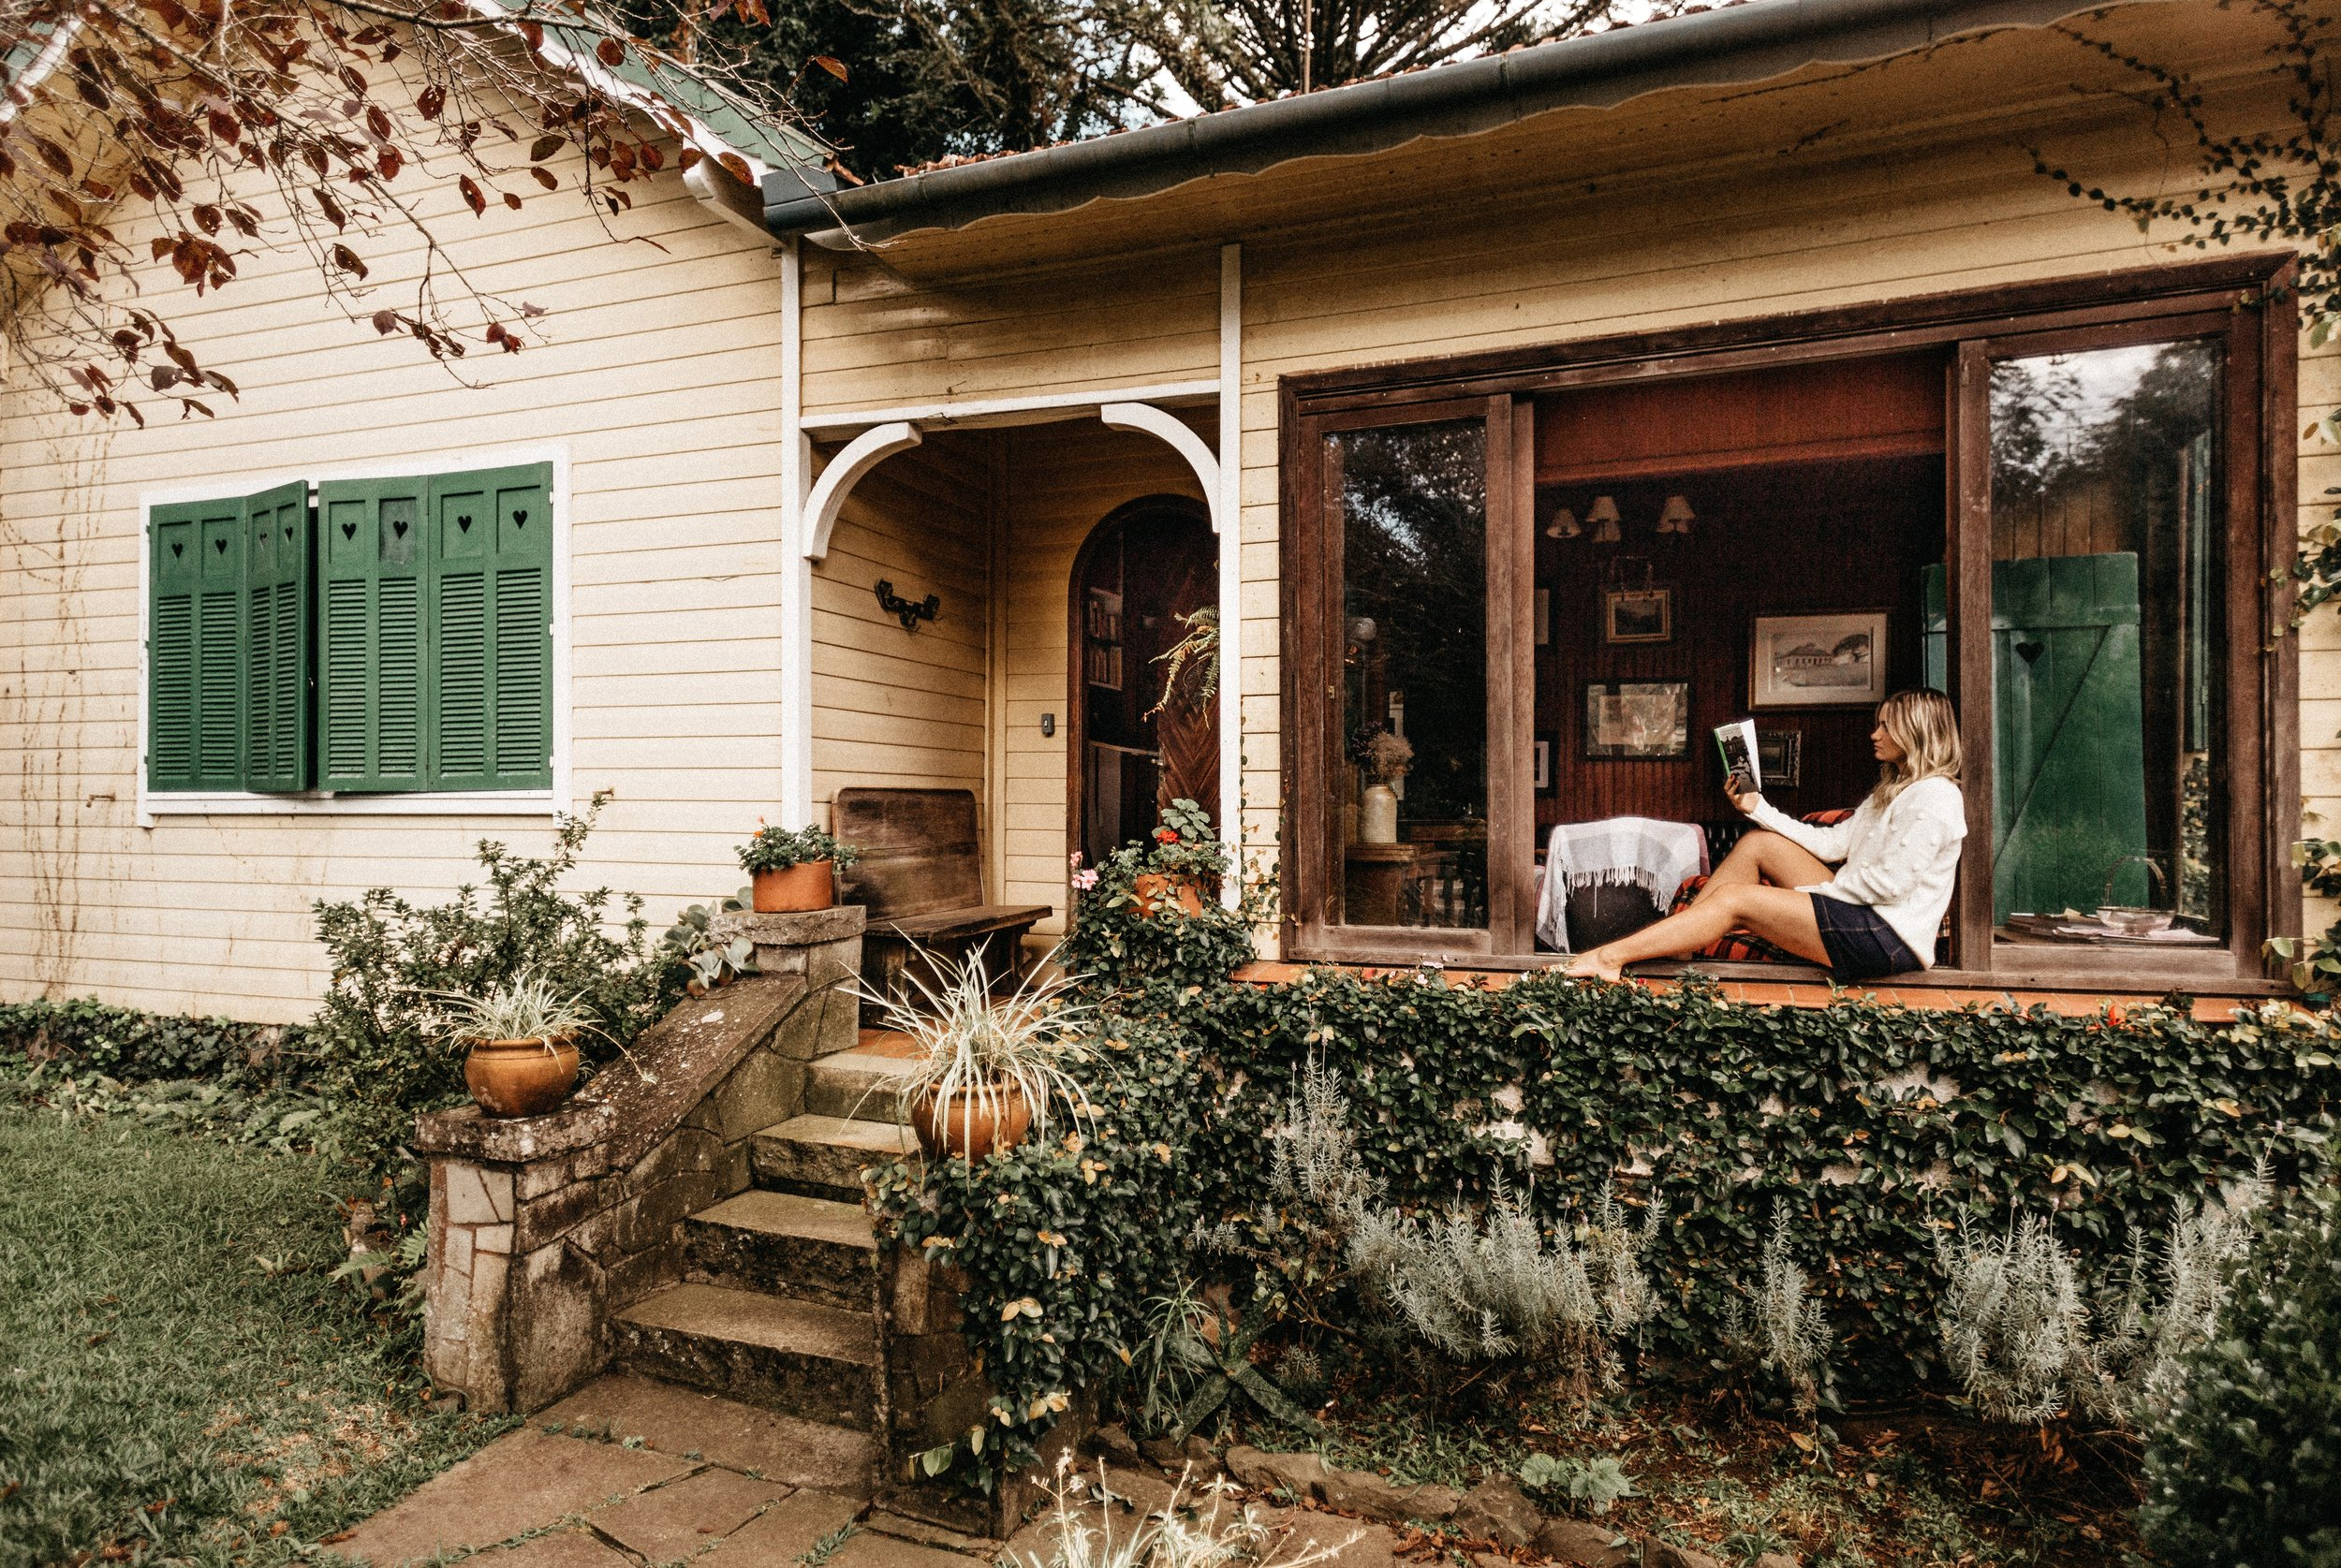 Porch + book + scones = a pretty good Sunday afternoon…